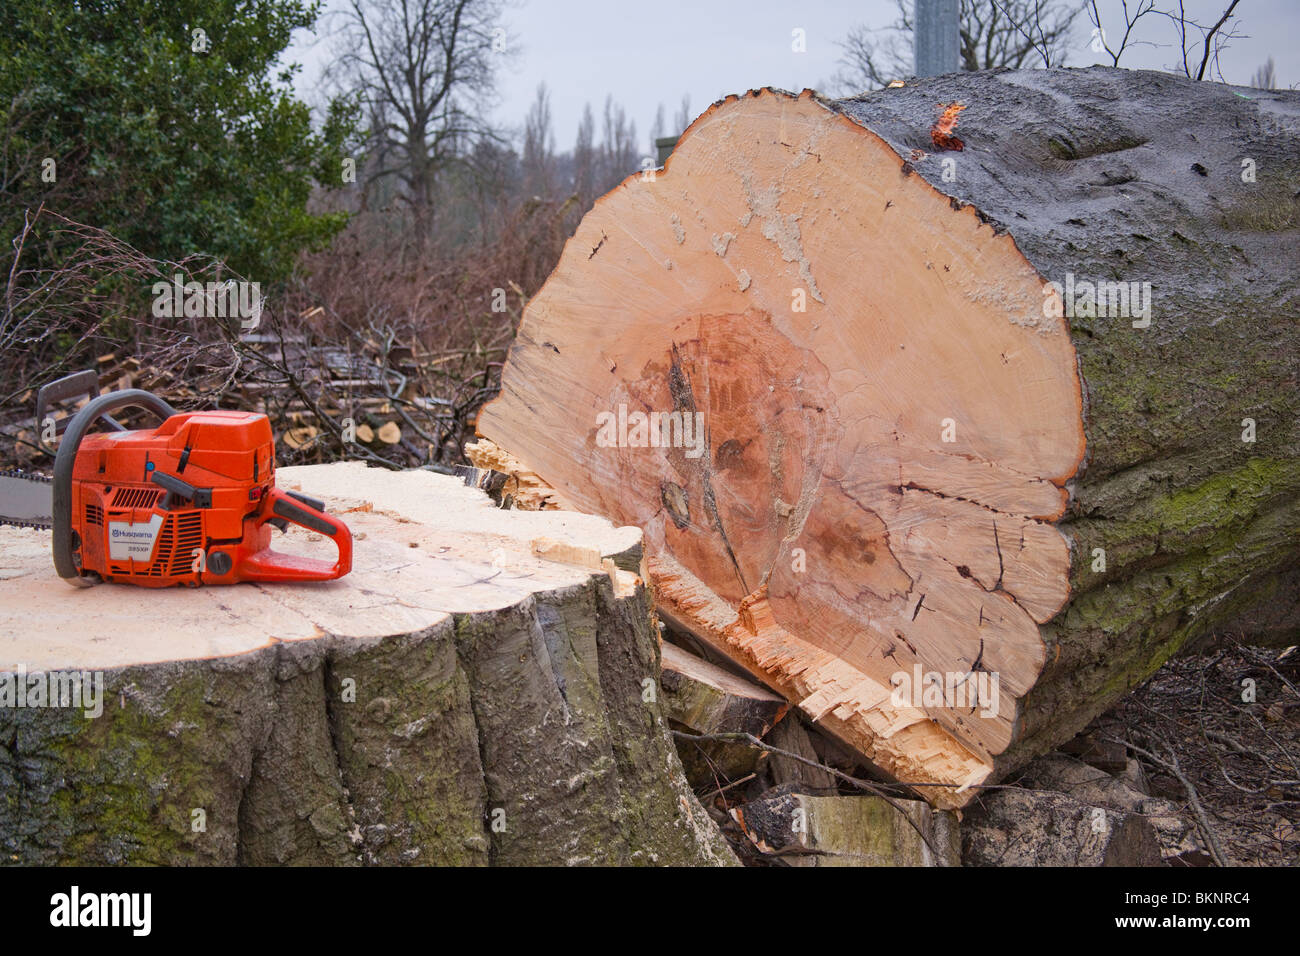 Felled tree and chainsaw. - Stock Image